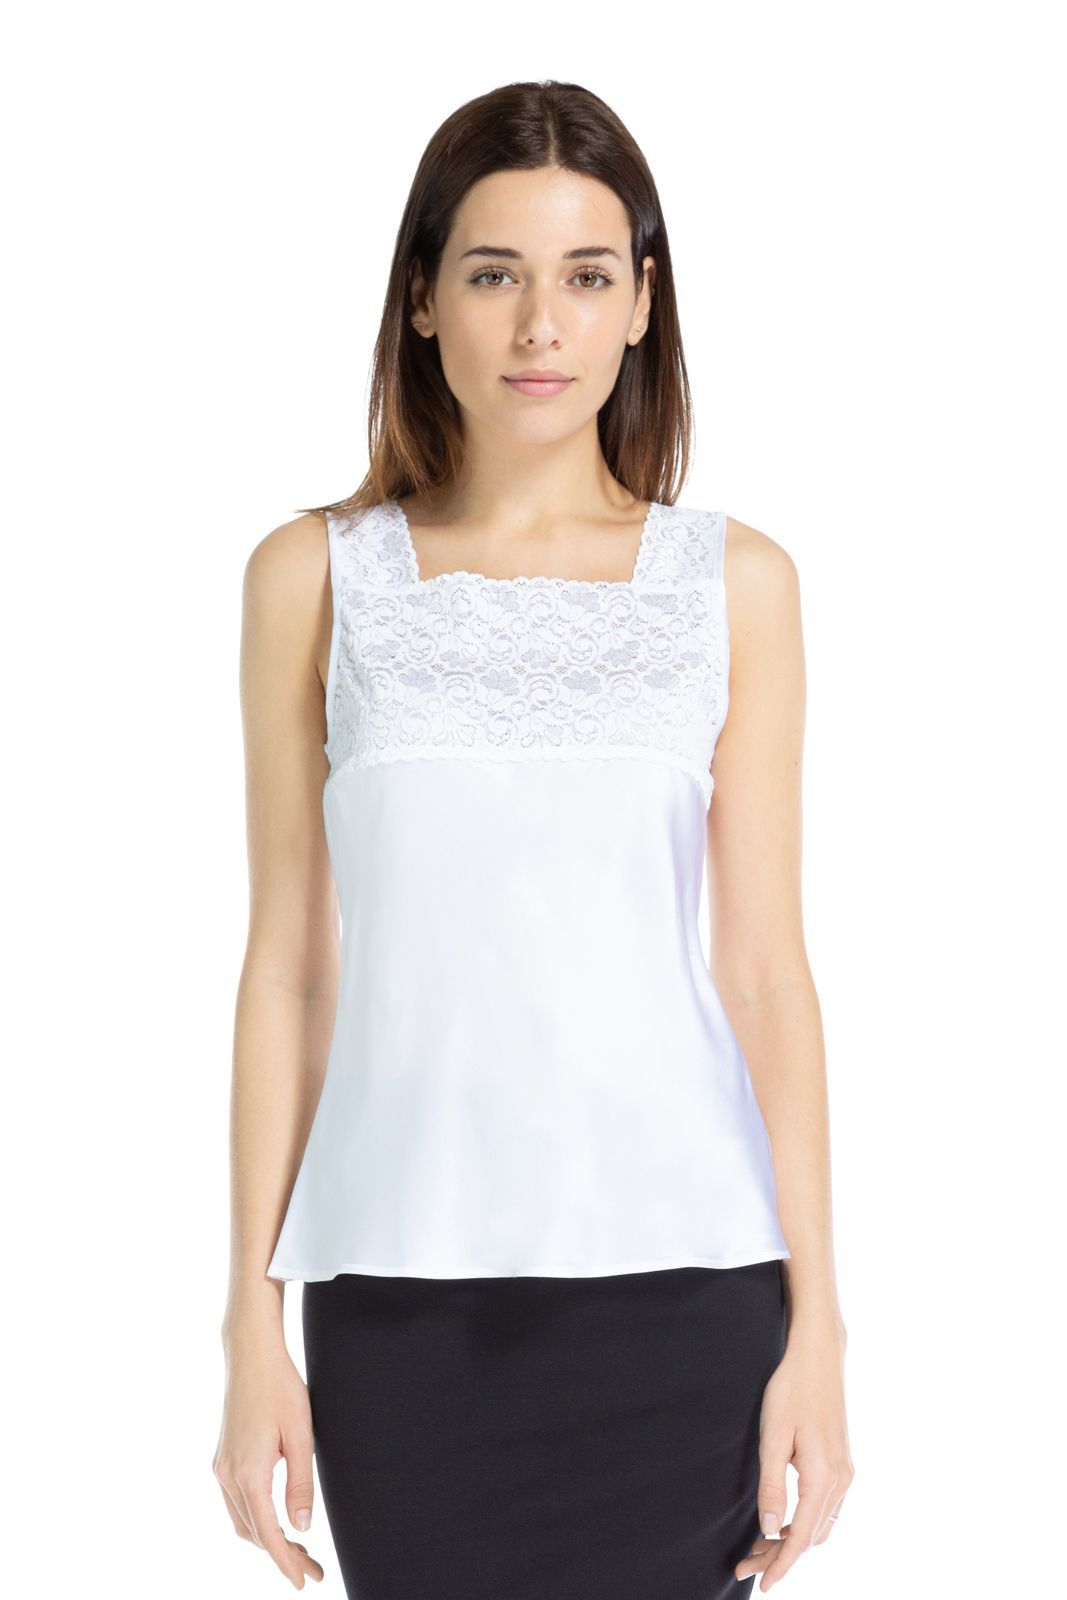 Women s 100% Pure Mulberry Silk Camisole with Lace Detail e2c59545c